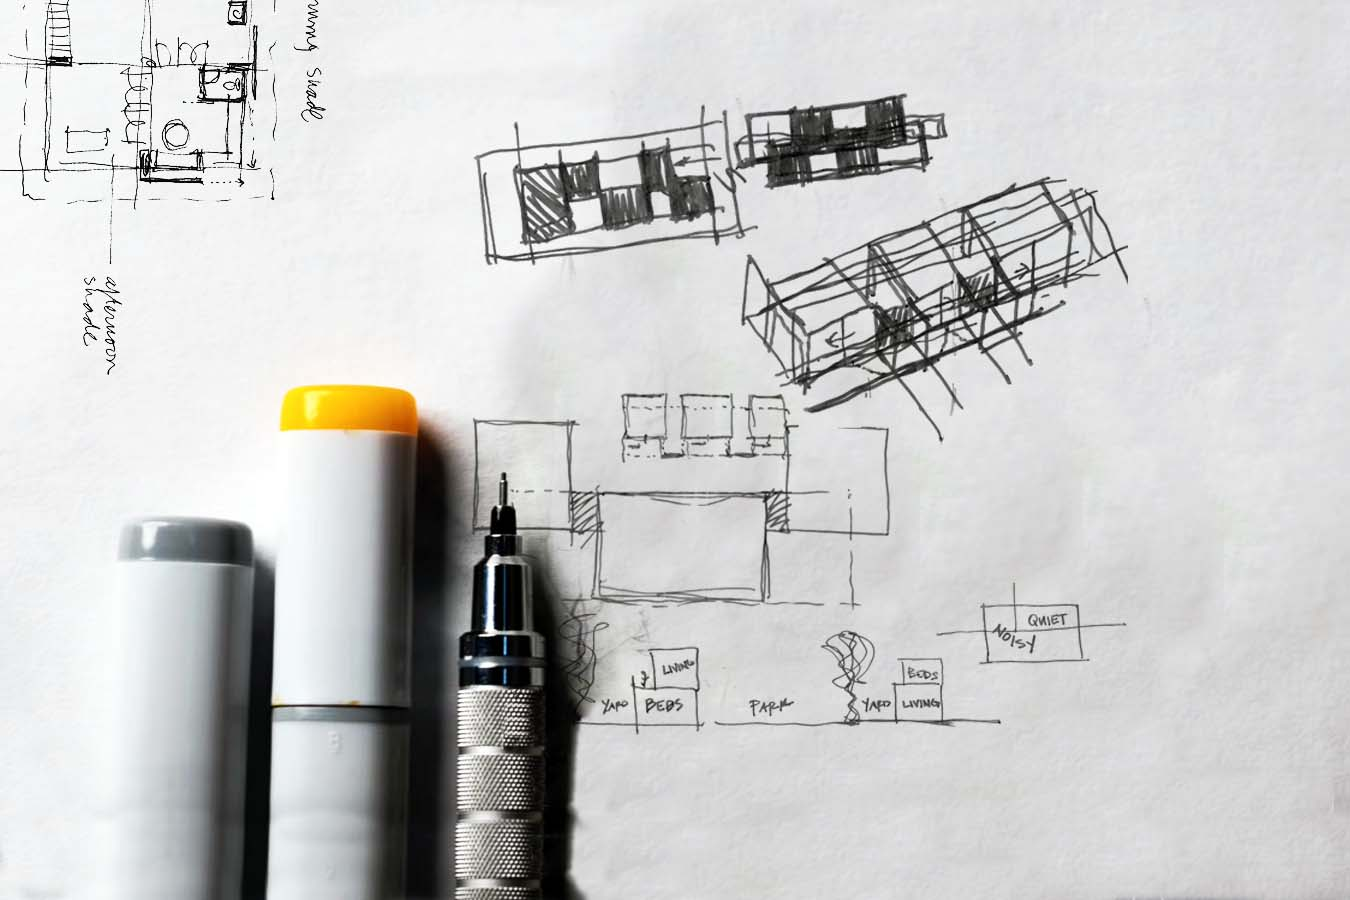 Archisoup-best-drafting-and-drawing-boards.jpg